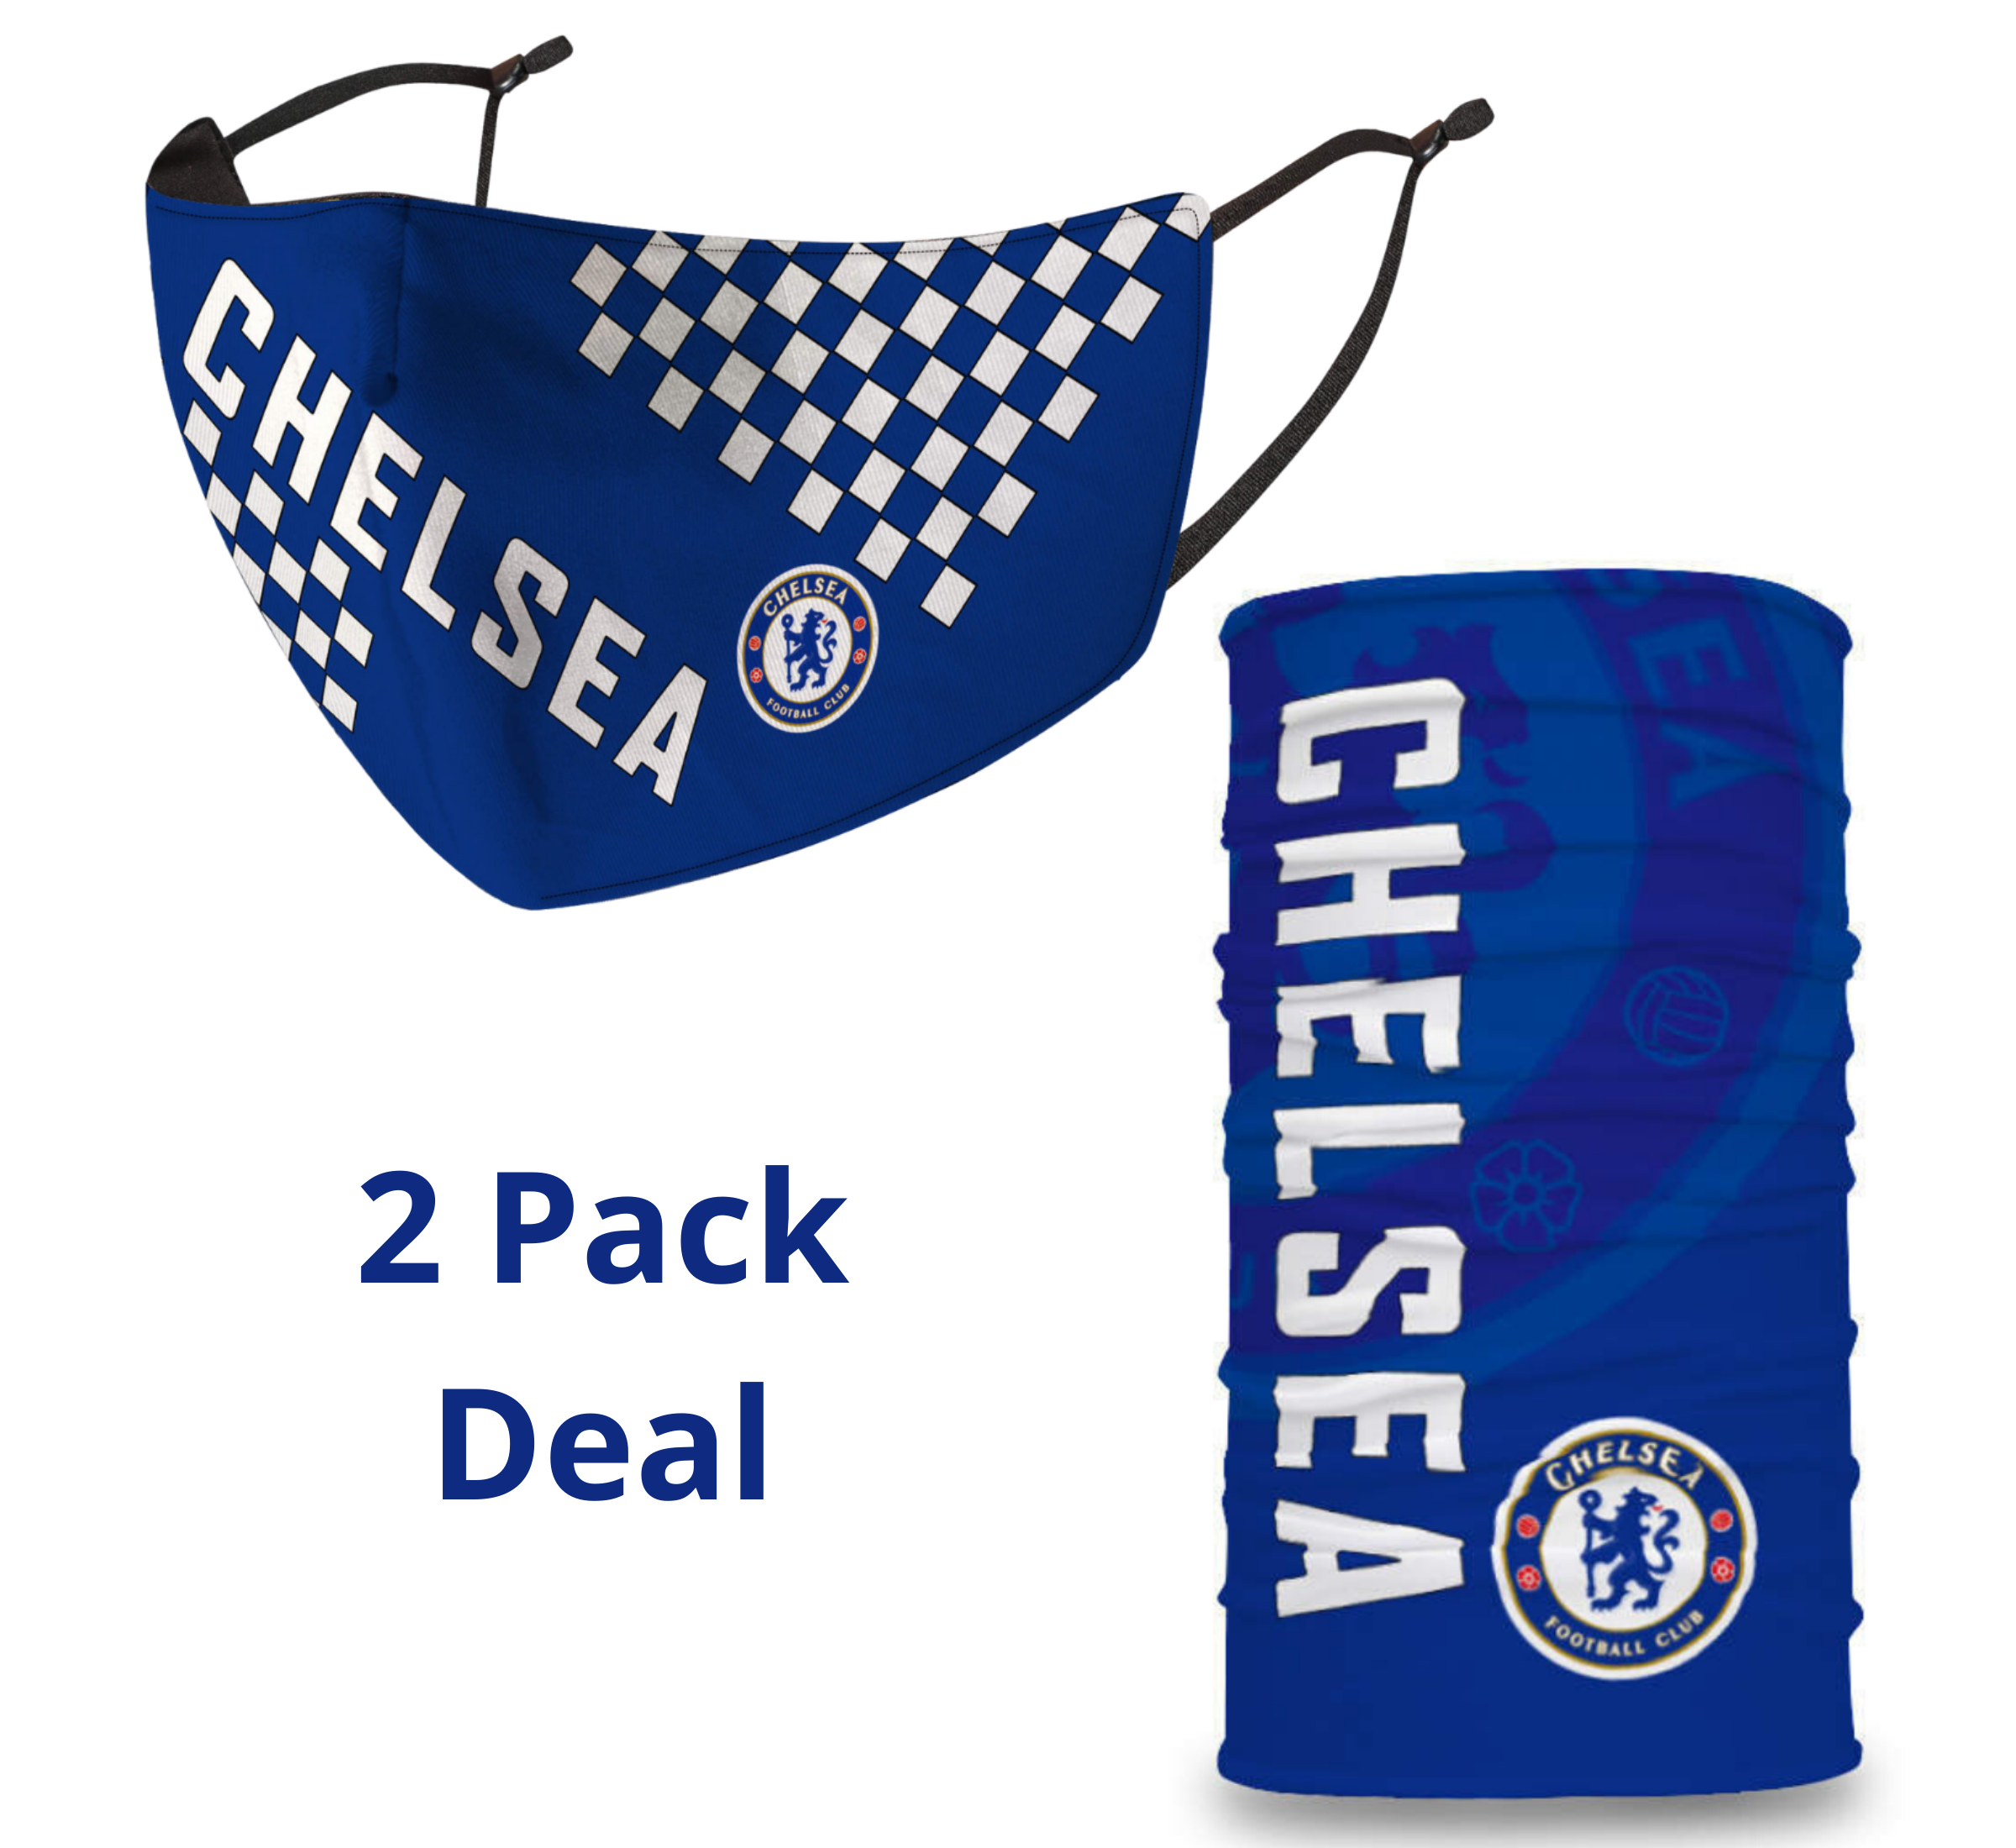 2 PACK Combo, Chelsea Mask with Adjustable Straps